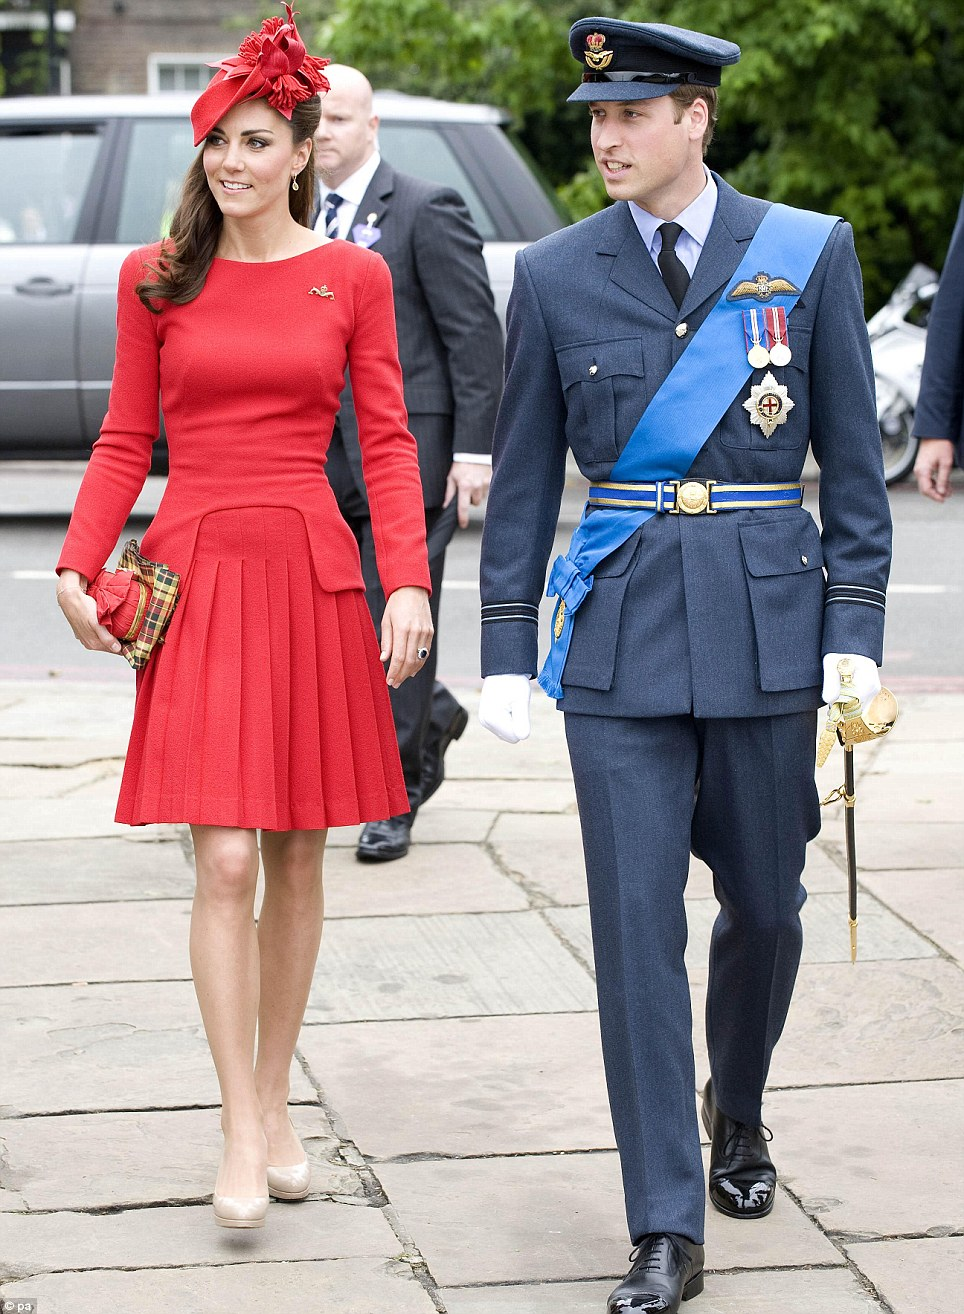 Fashion fashback: Kate paired the dress with her favourite LK Bennett nude heels and a tartan clutch when she joined Prince William for the Jubliee celebrations in 2012